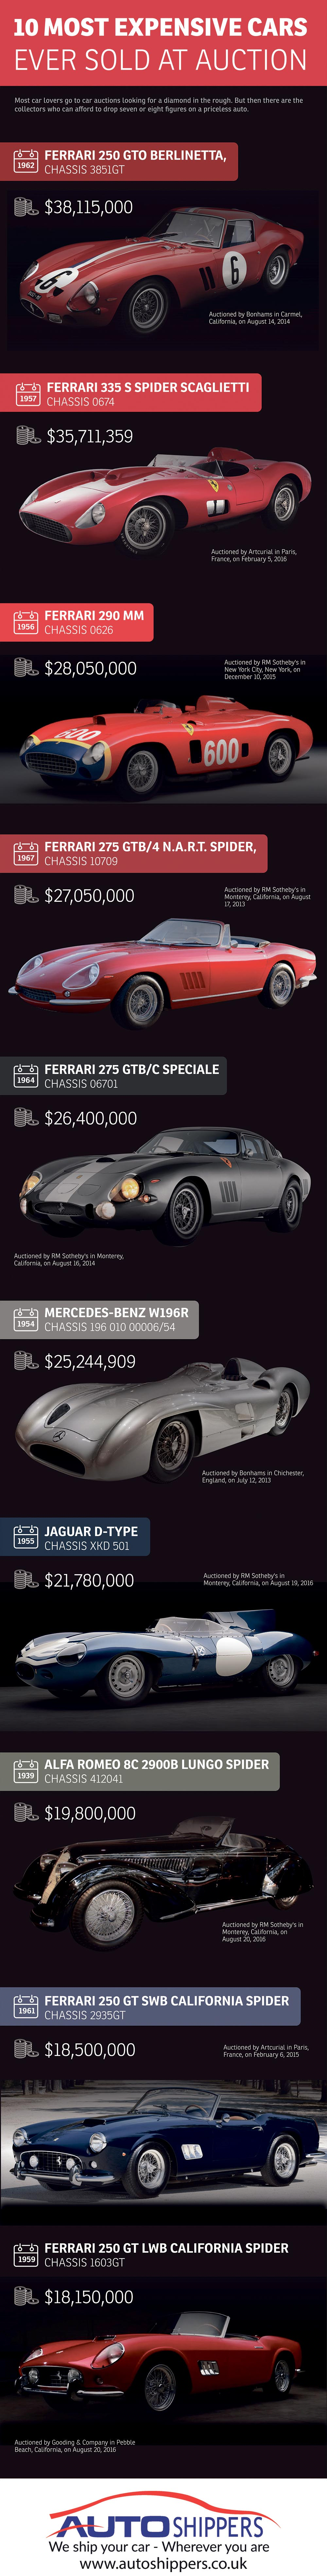 10 Most Expensive Cars Ever Sold at Auction by Auto Shippers